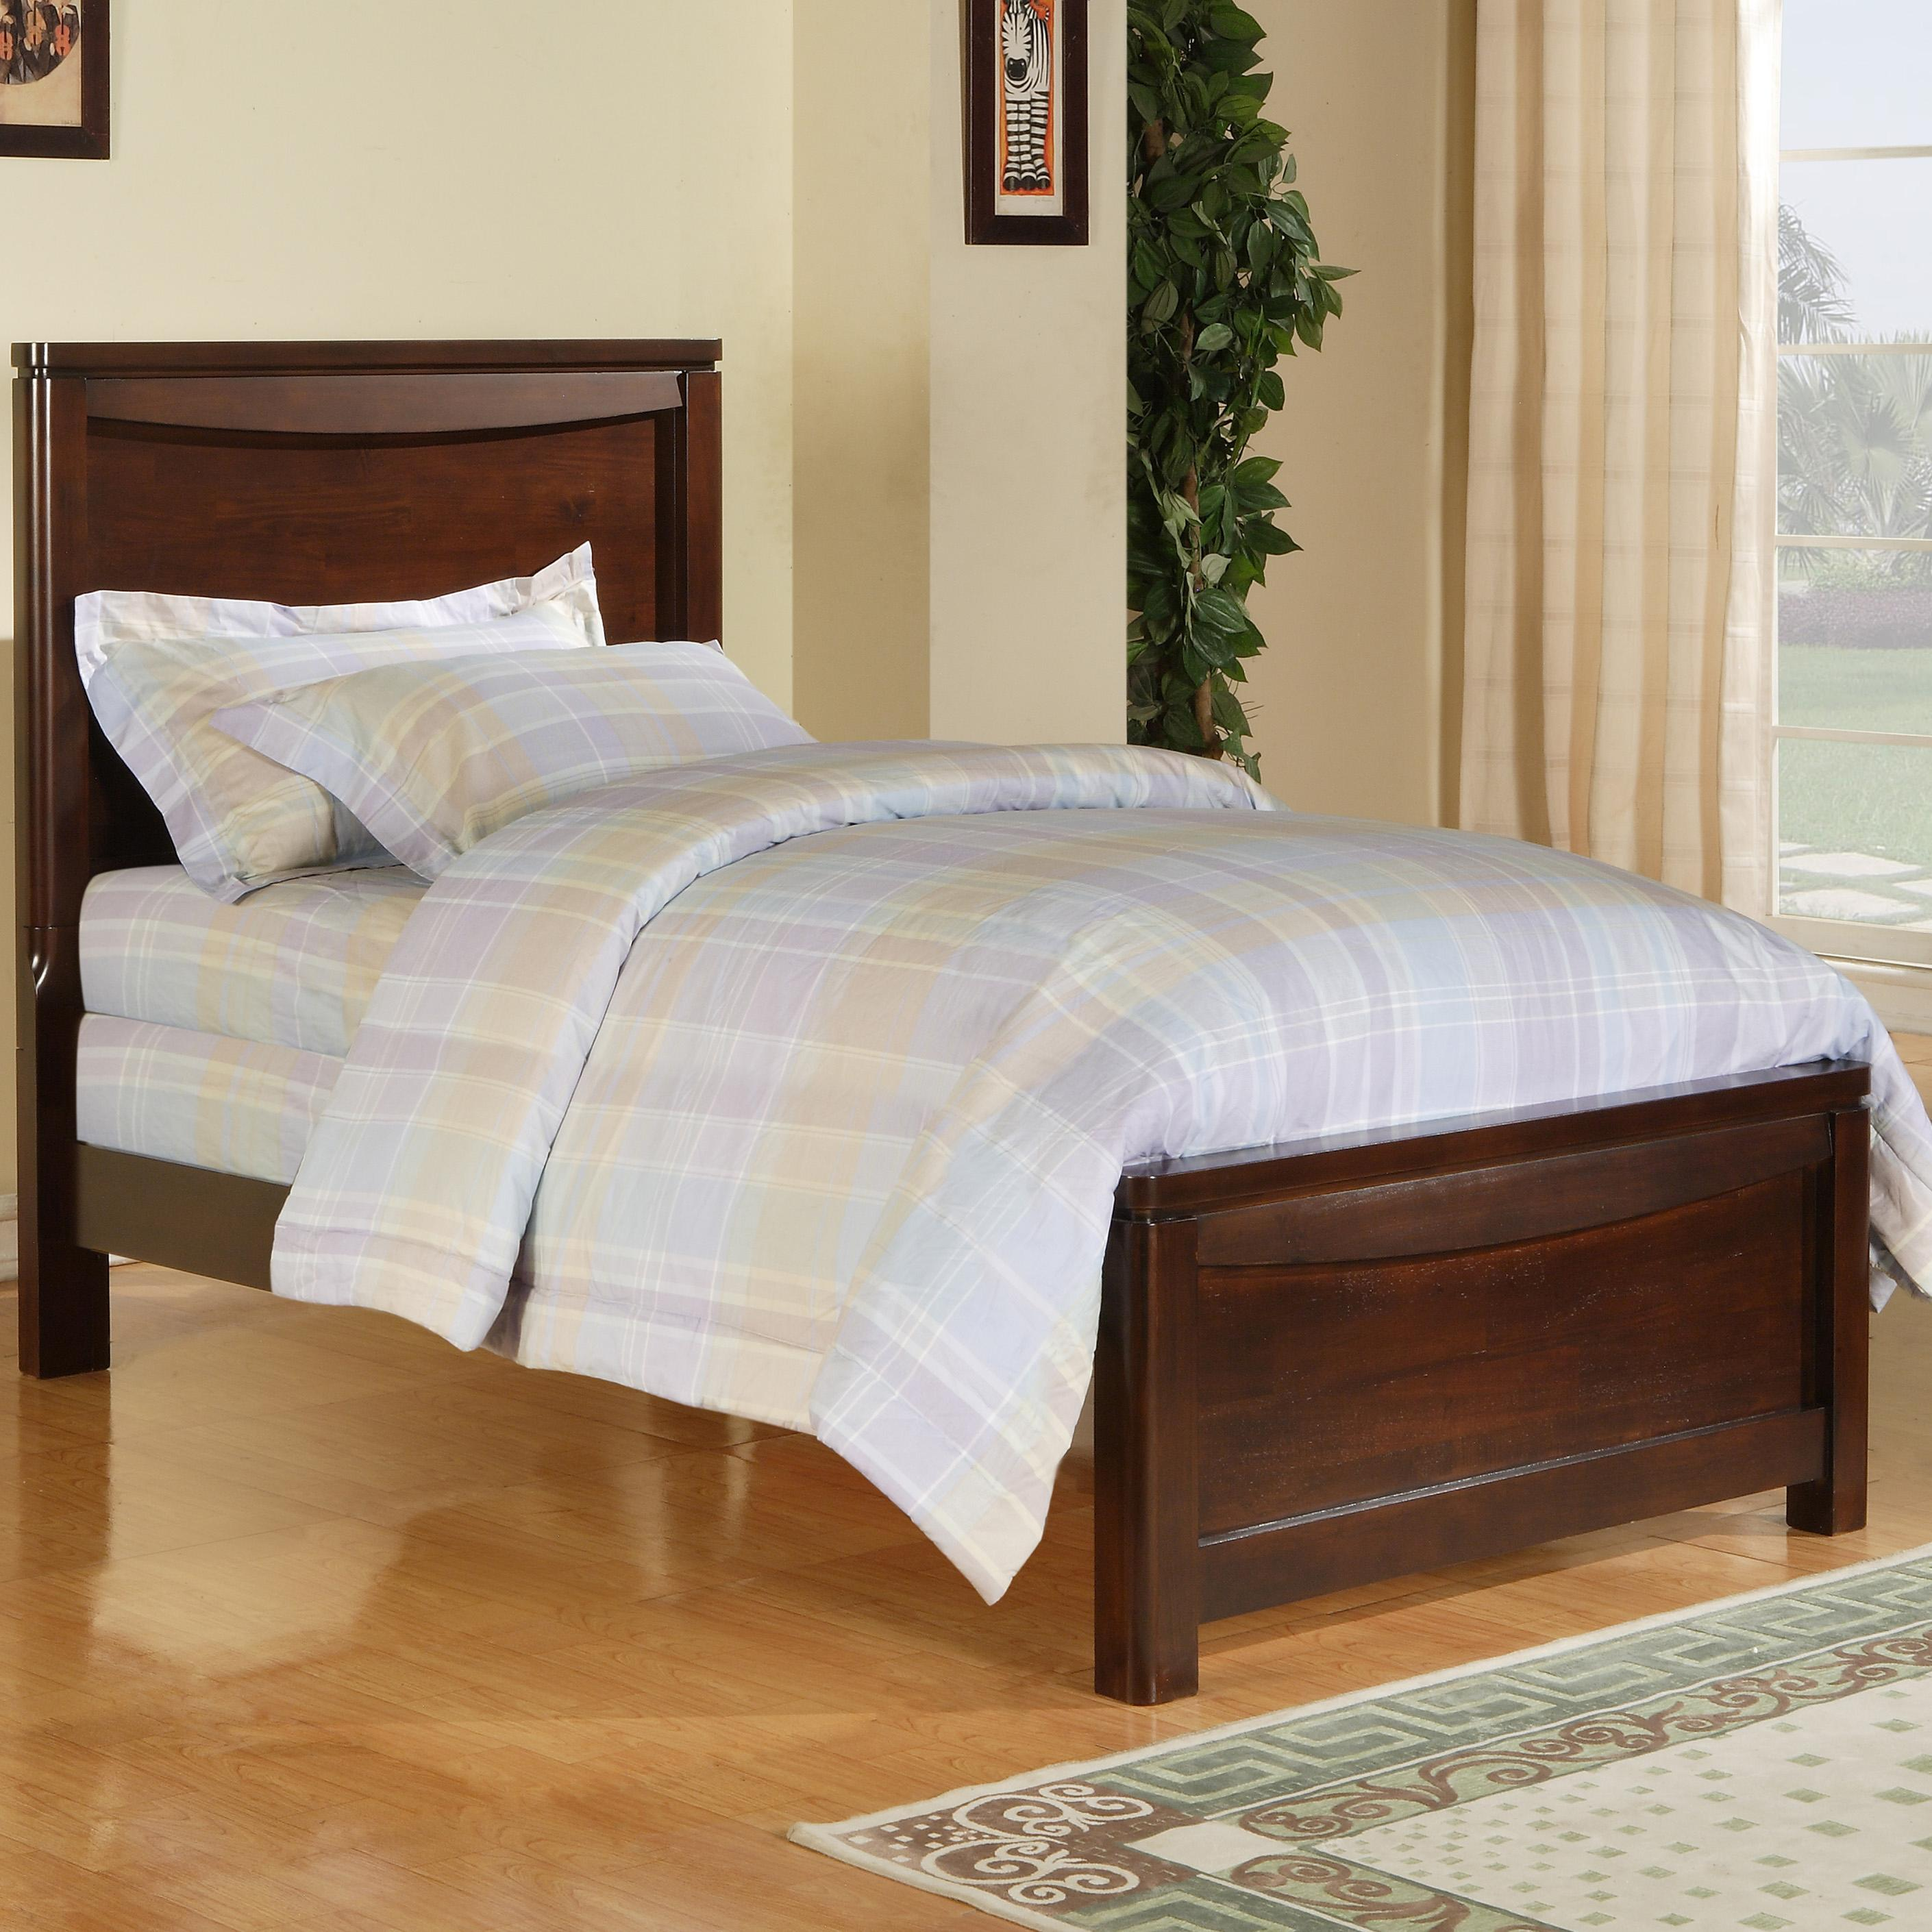 Morris Home Furnishings Granada Granada Twin Panel Bed - Item Number: 2260-19H+19F+19R